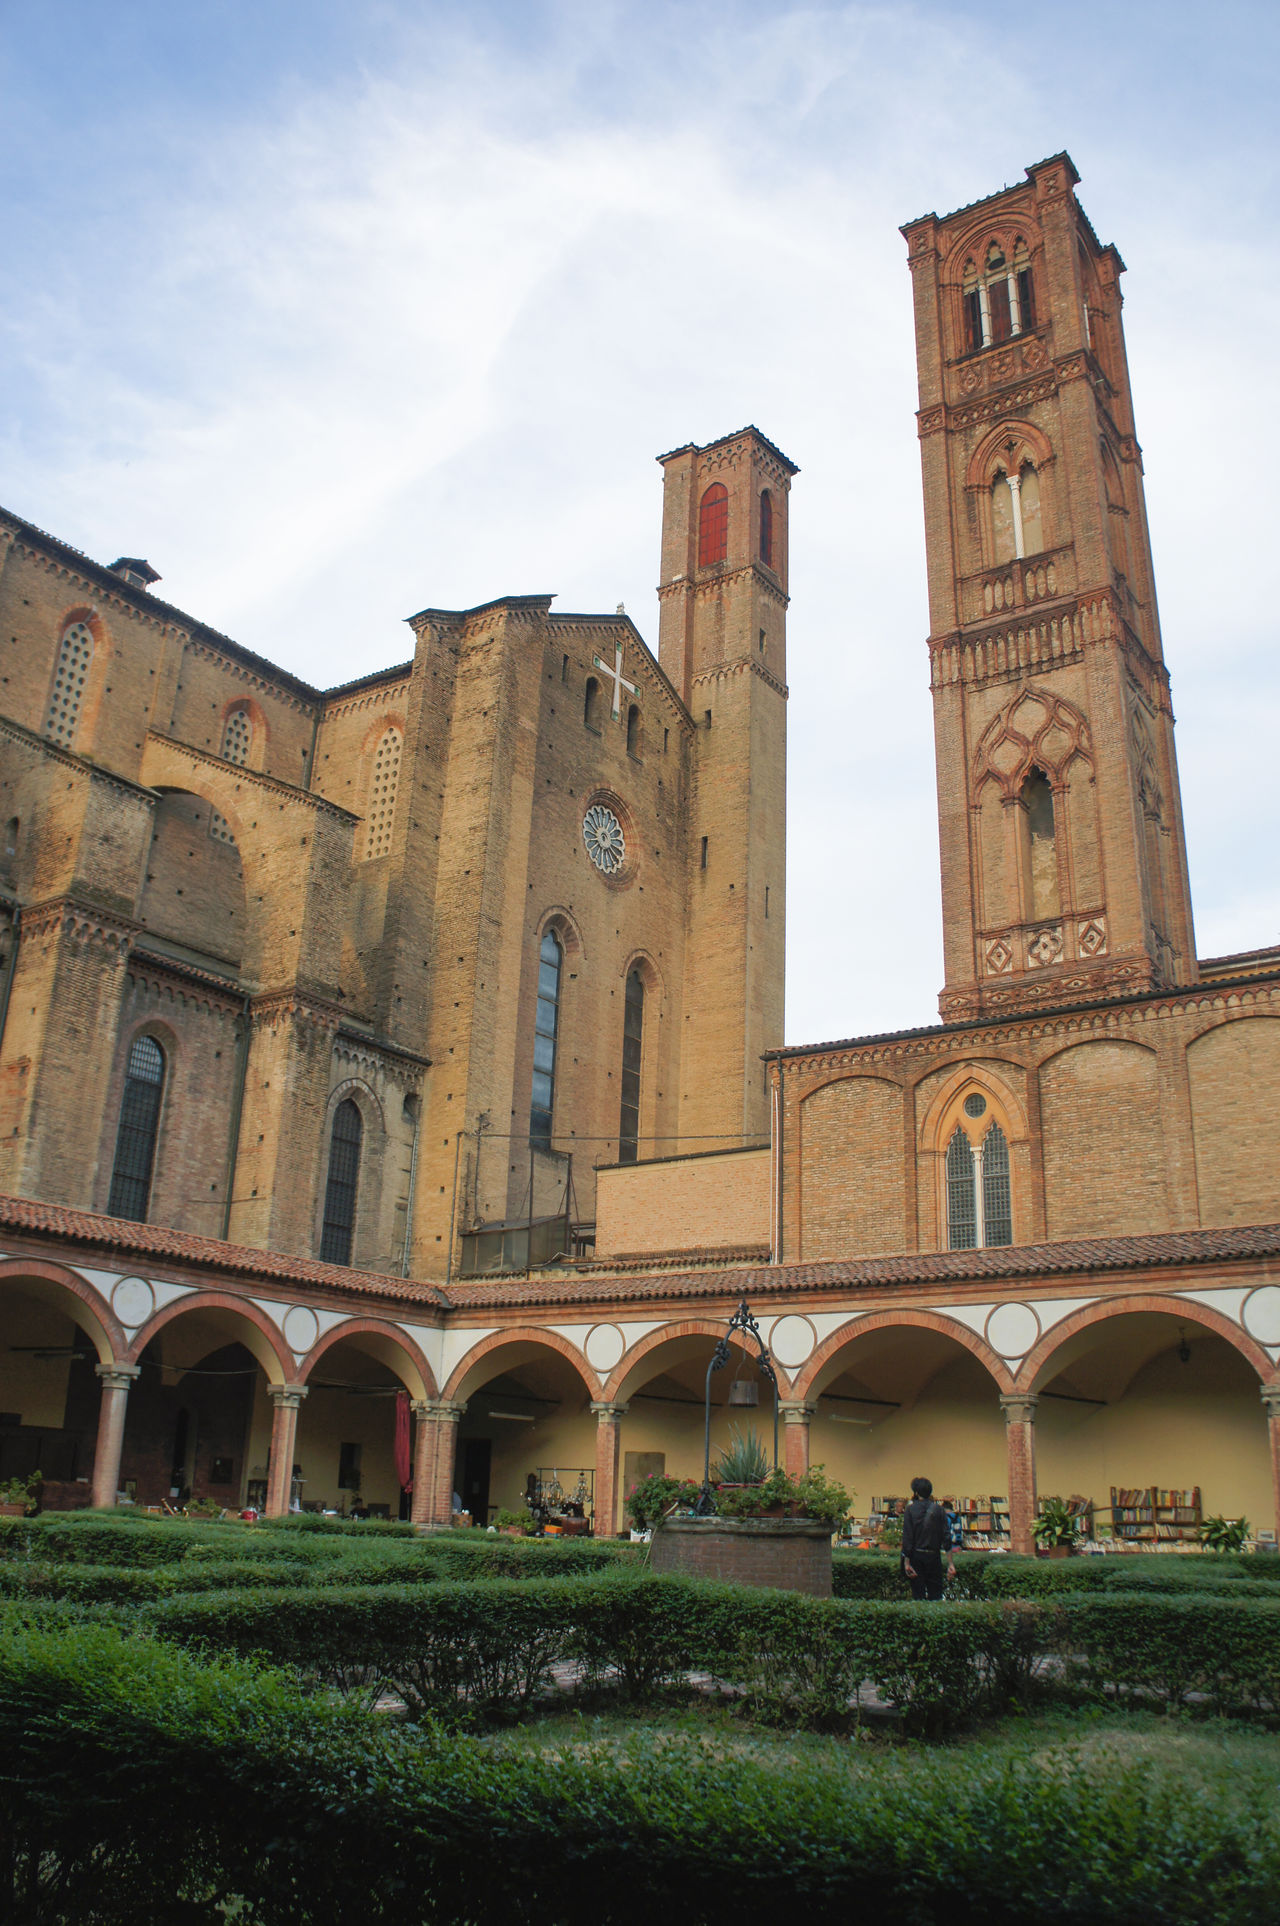 Architecture Basilica Bell Tower Chiostro Church Cloister Culture Gothic Style History Outdoors Tourism Travel Destinations